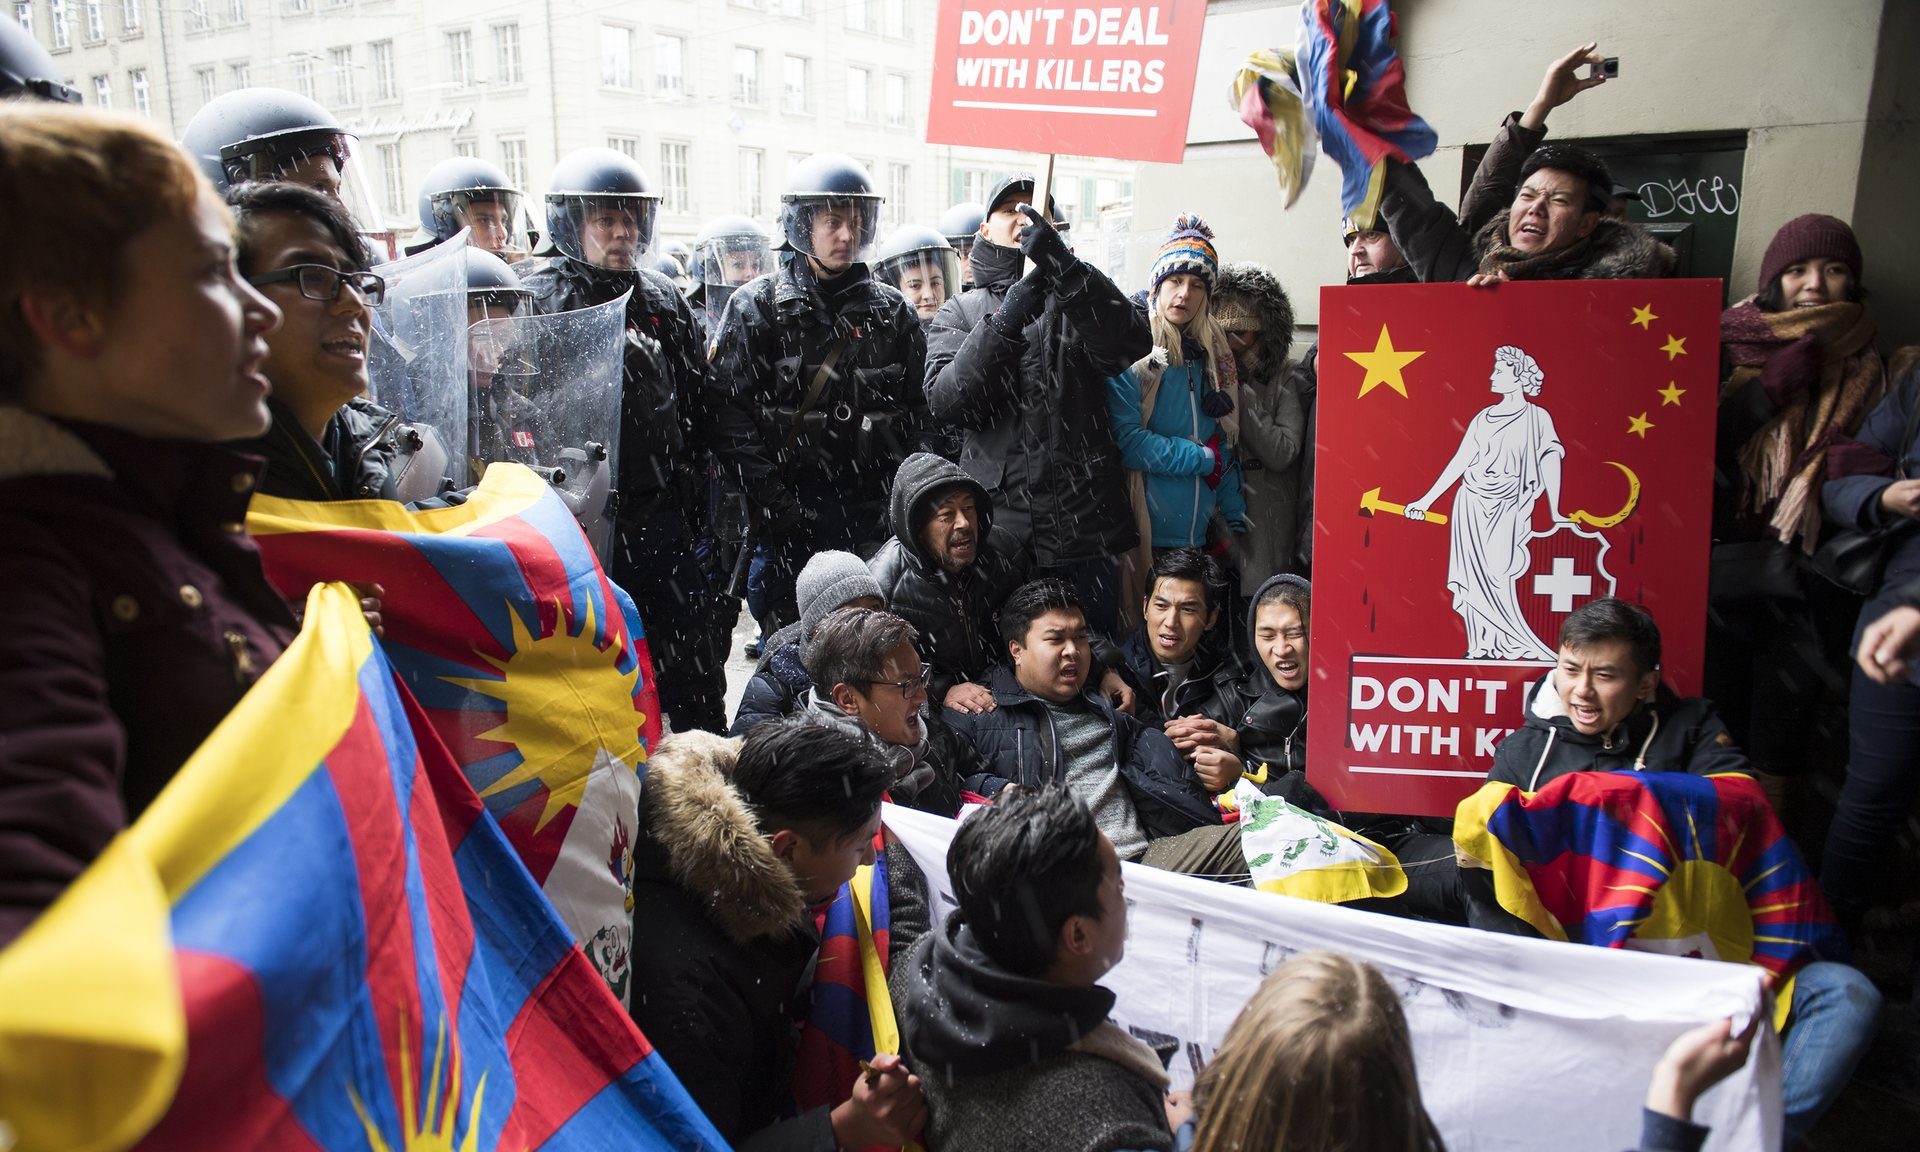 Tibetan and Swiss nationals gathered to protest the arrival of China's Xi Jinping. (Photo courtesy: Anthony Anex/AP)